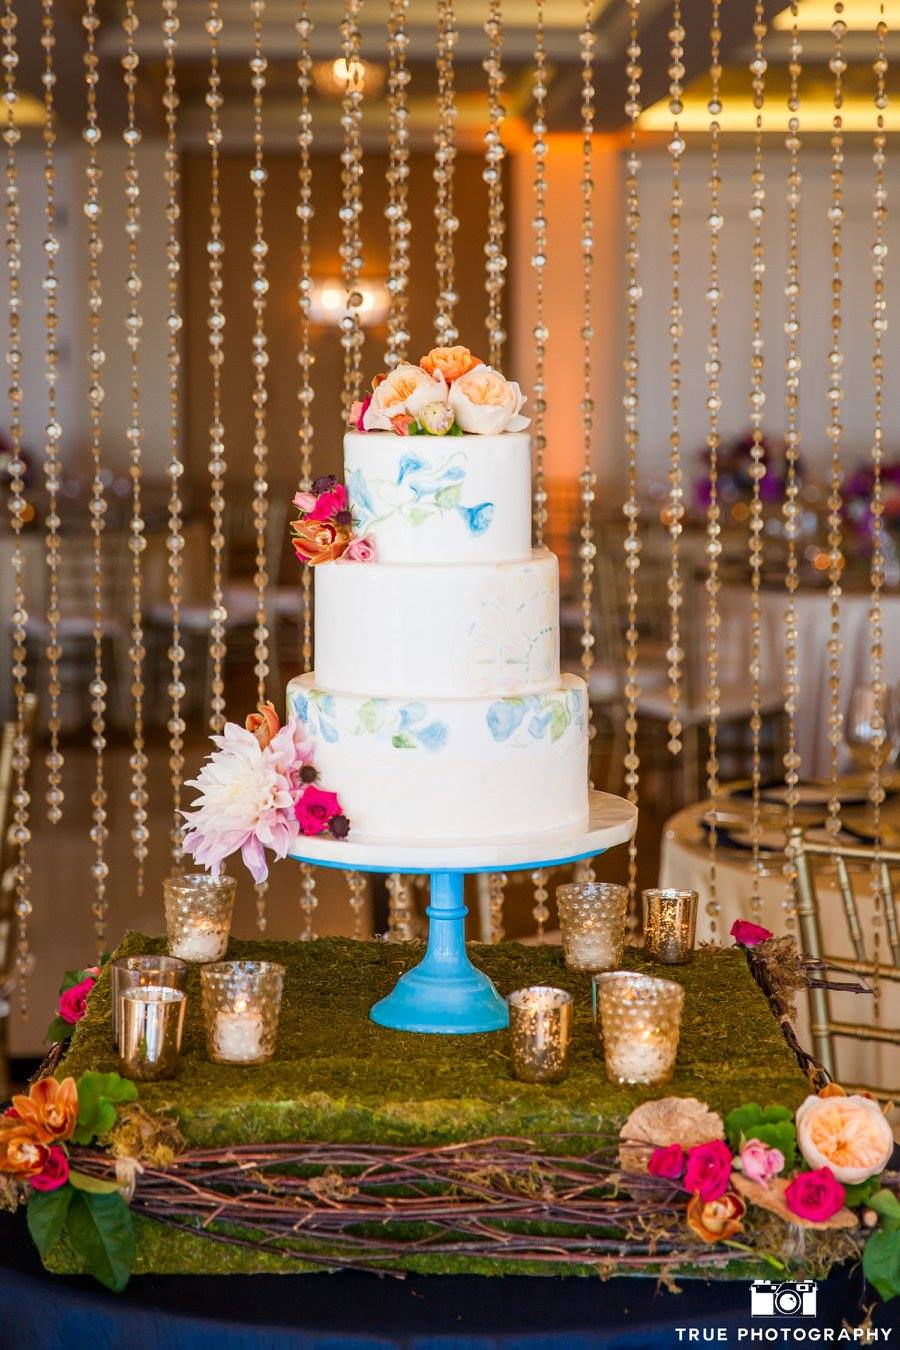 hand-painted-tile-designs-wedding-cake-by-sweet-cheeks-at-la-valencia-la-jolla-the-best-wedding-for-you